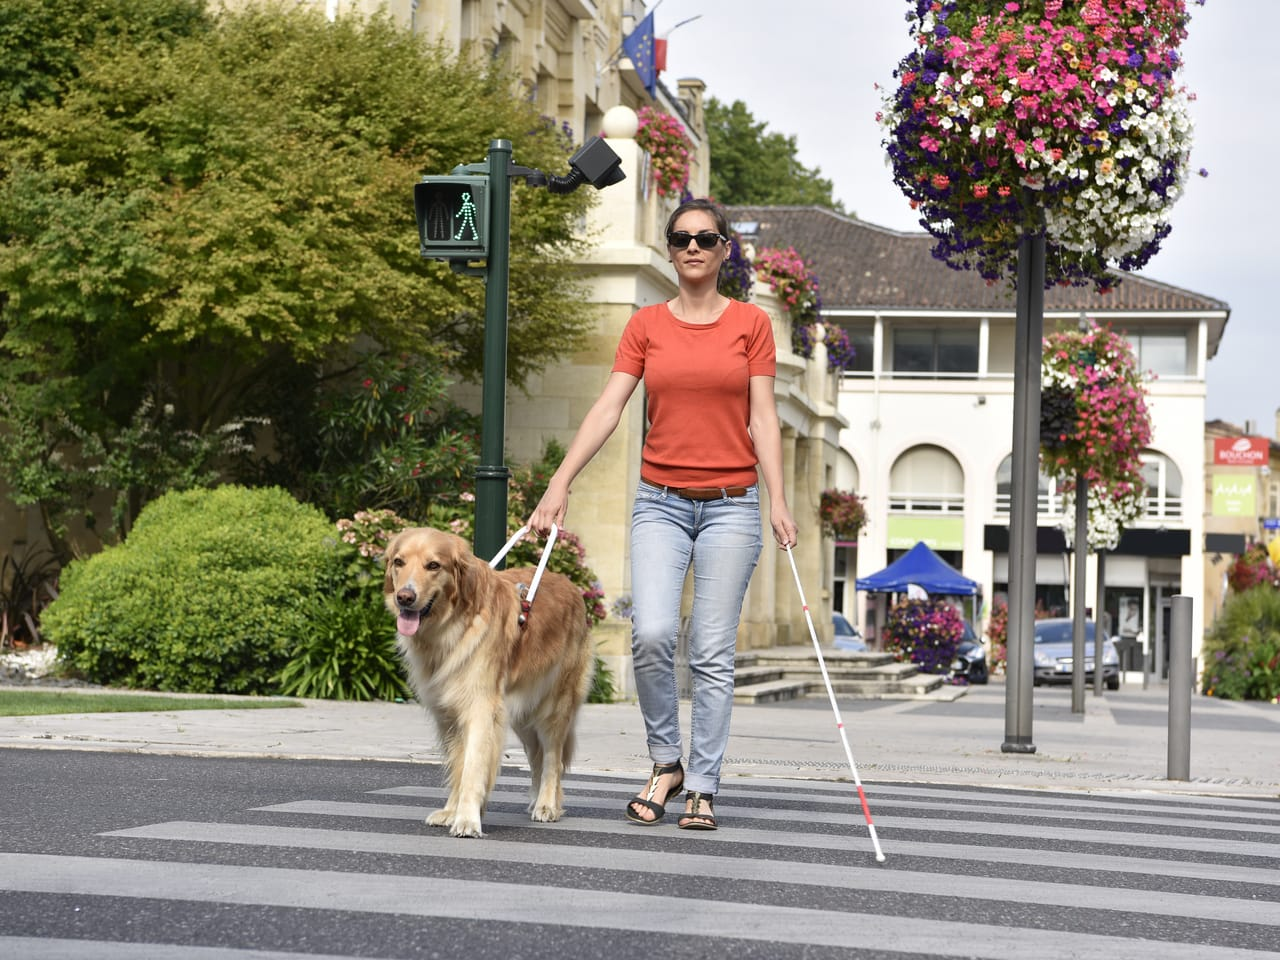 The Ultimate Guide to Designing and Navigating Spaces for People with Vision Impairment